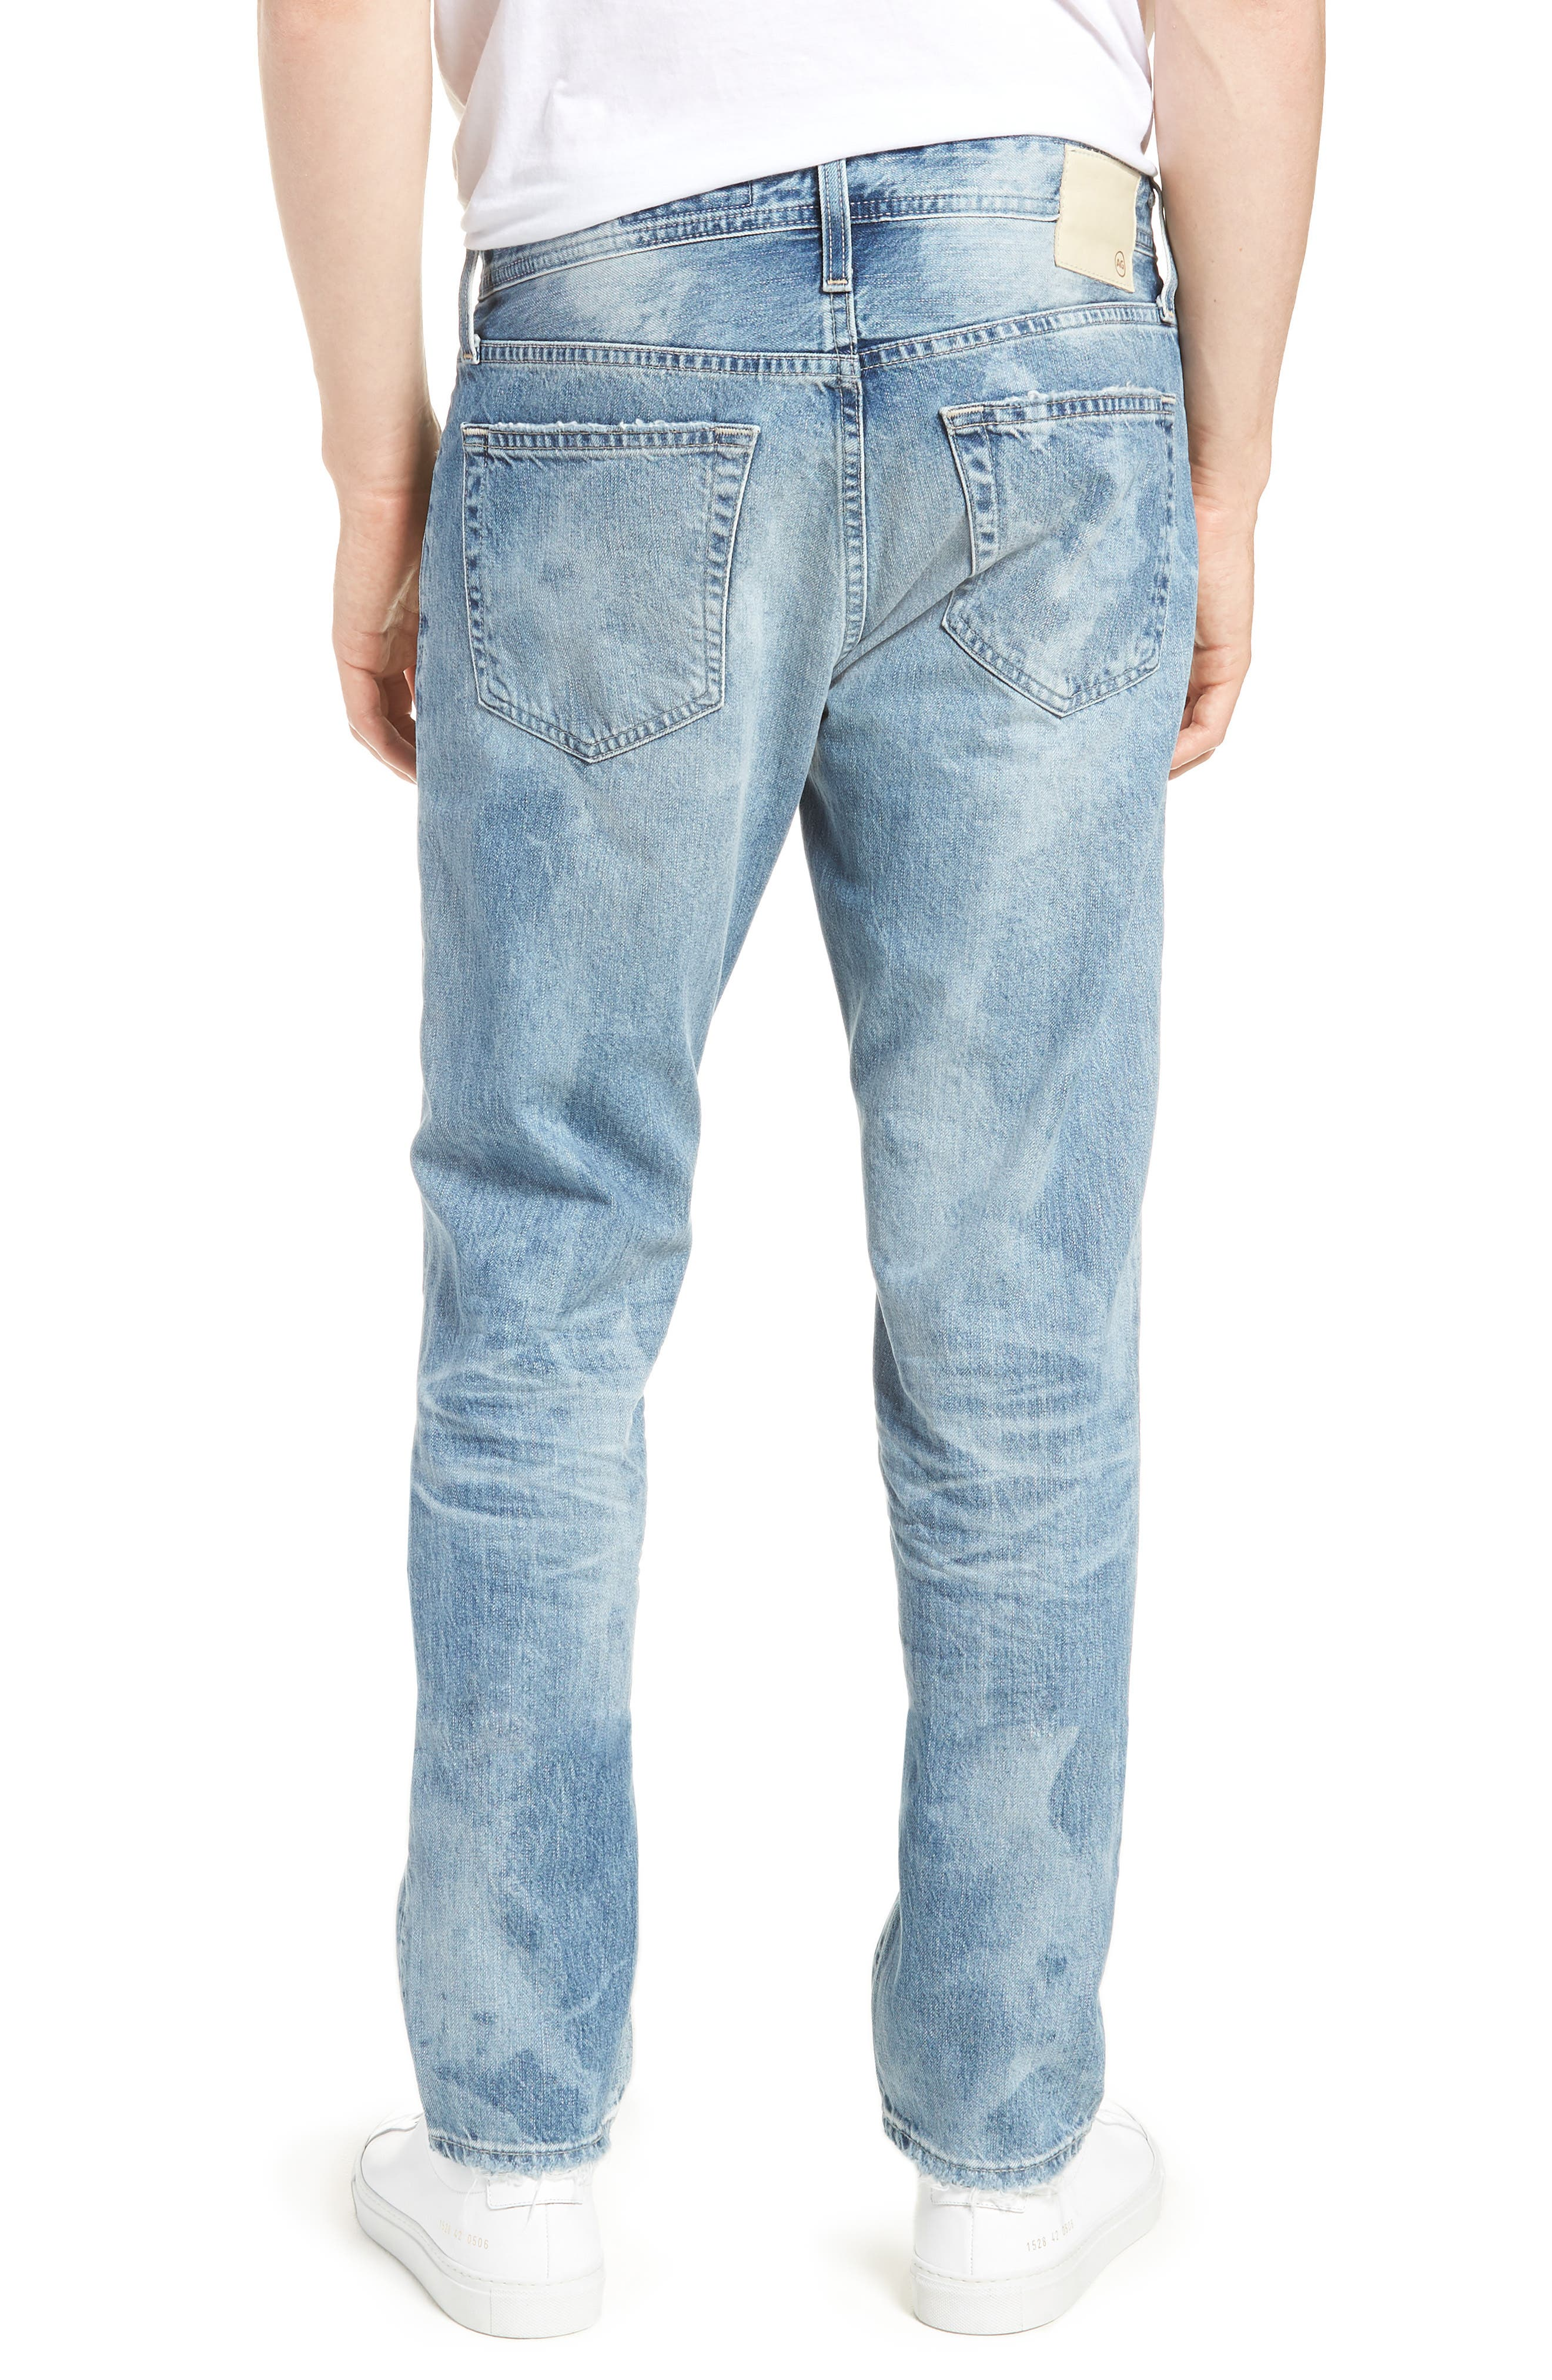 Tellis Slim Fit Jeans,                             Alternate thumbnail 2, color,                             23 Years Shearwater